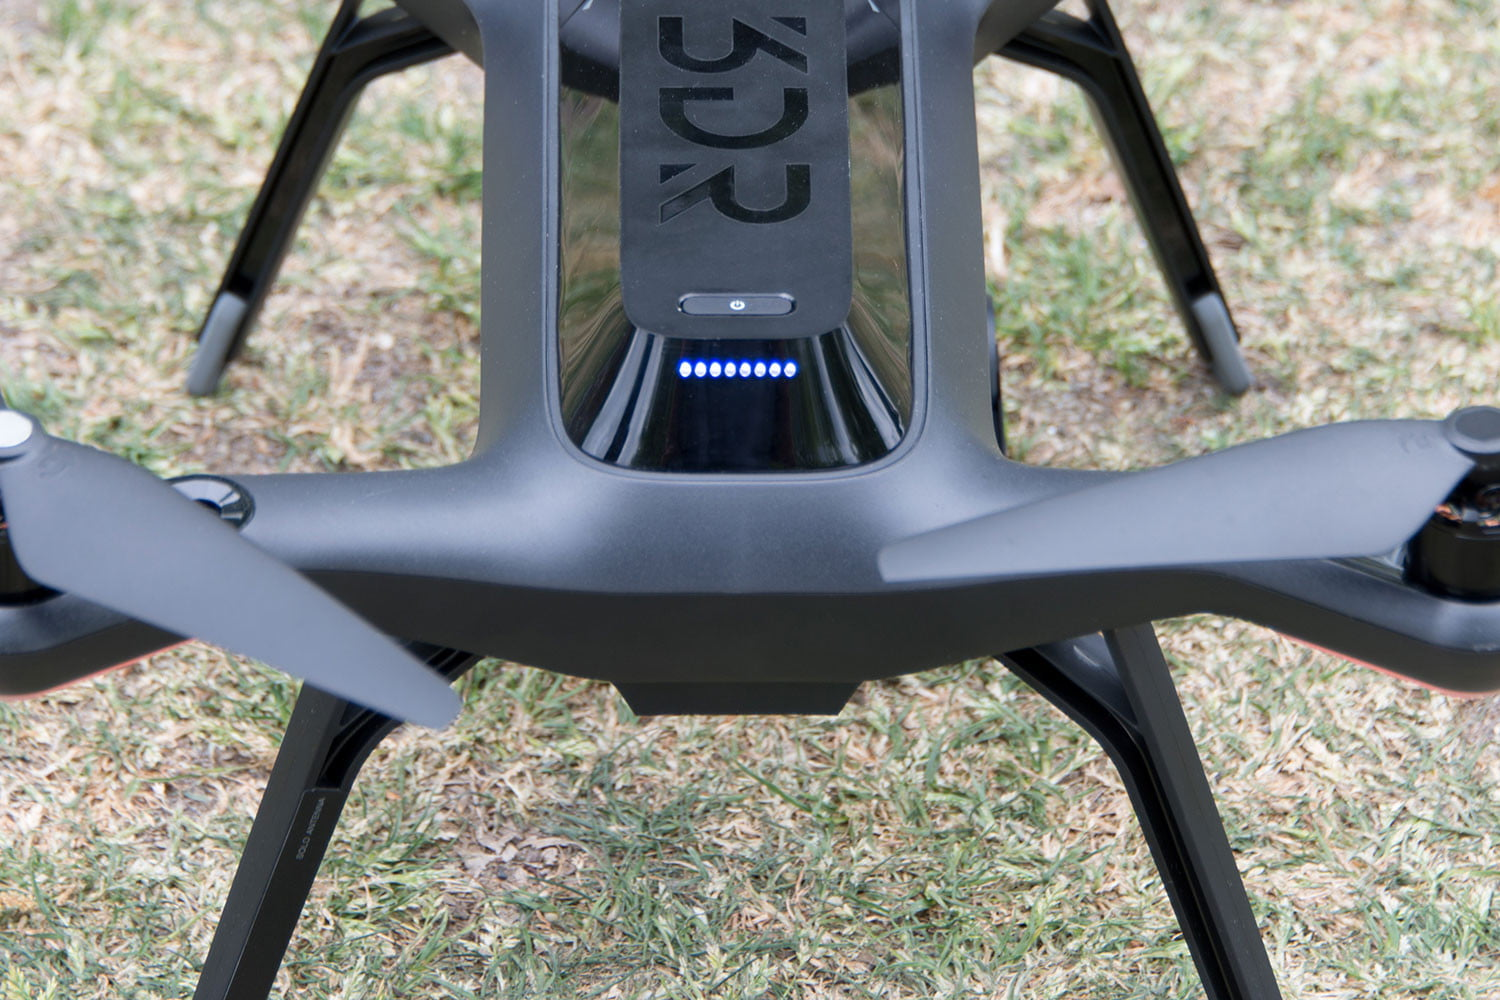 3DR Solo Drone Review | Digital Trends